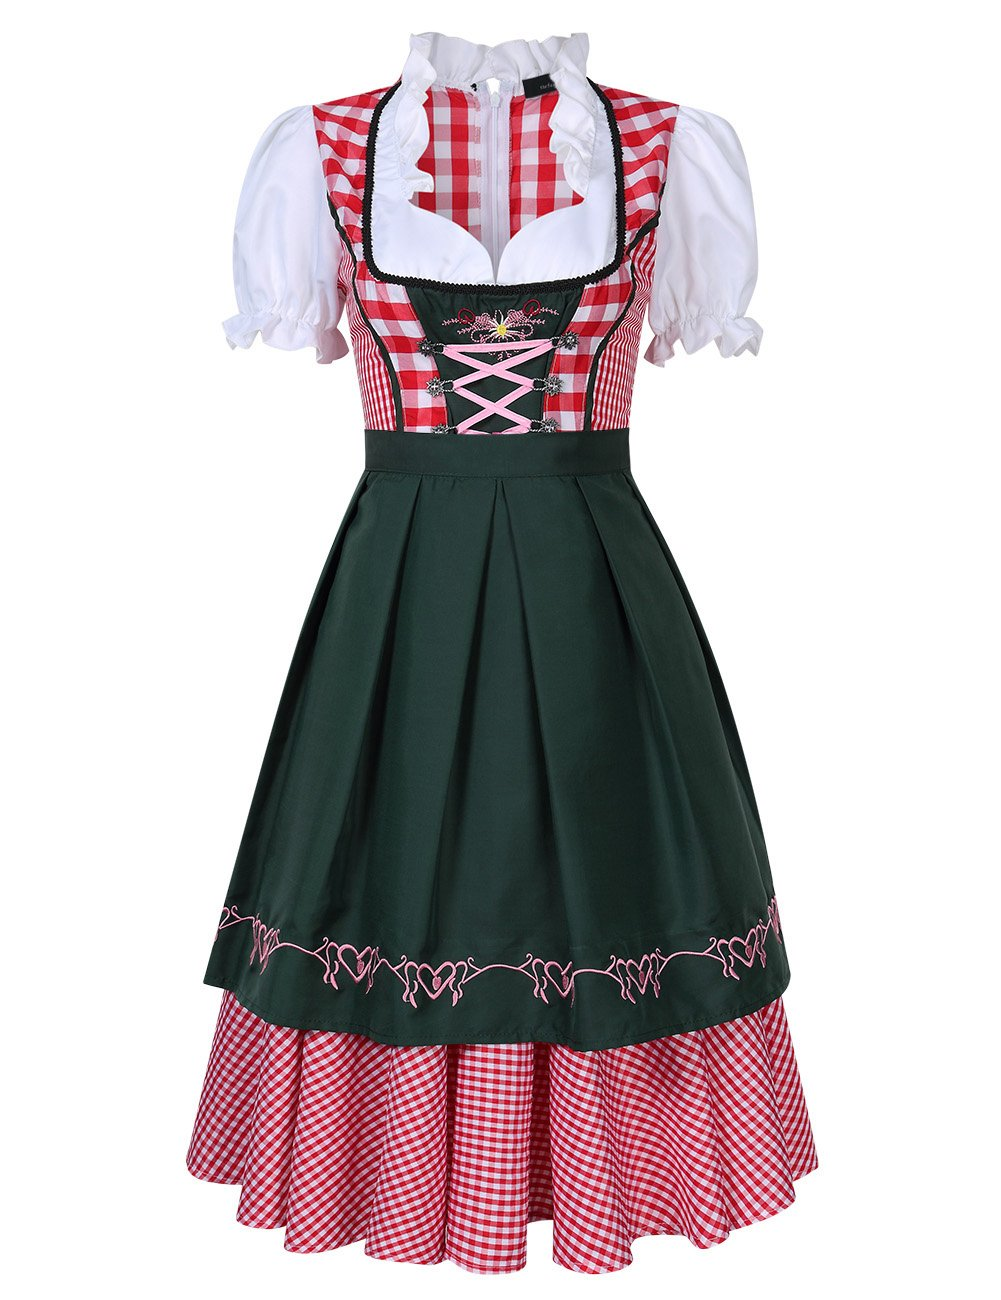 Leoie Women's Beer Festival Dress Suit Plaid Ruched Short Sleeve Holiday Party Dress for Oktoberfest Red 42